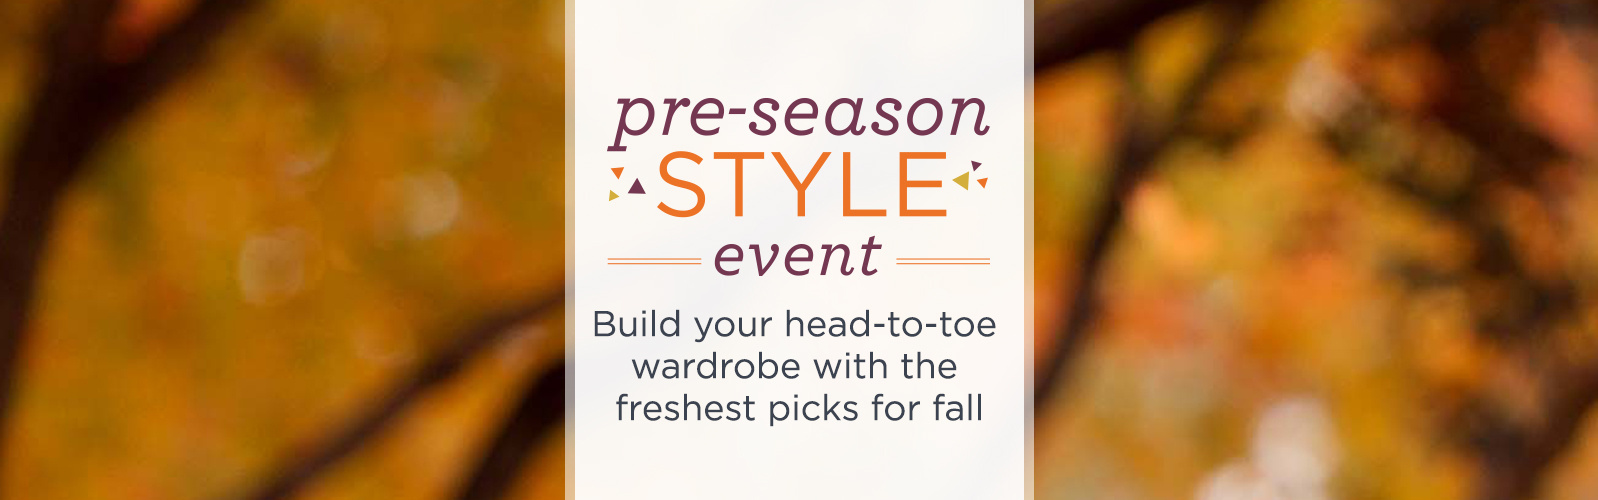 Pre-Season Style - Build your head-to-toe wardrobe with the freshest picks for fall